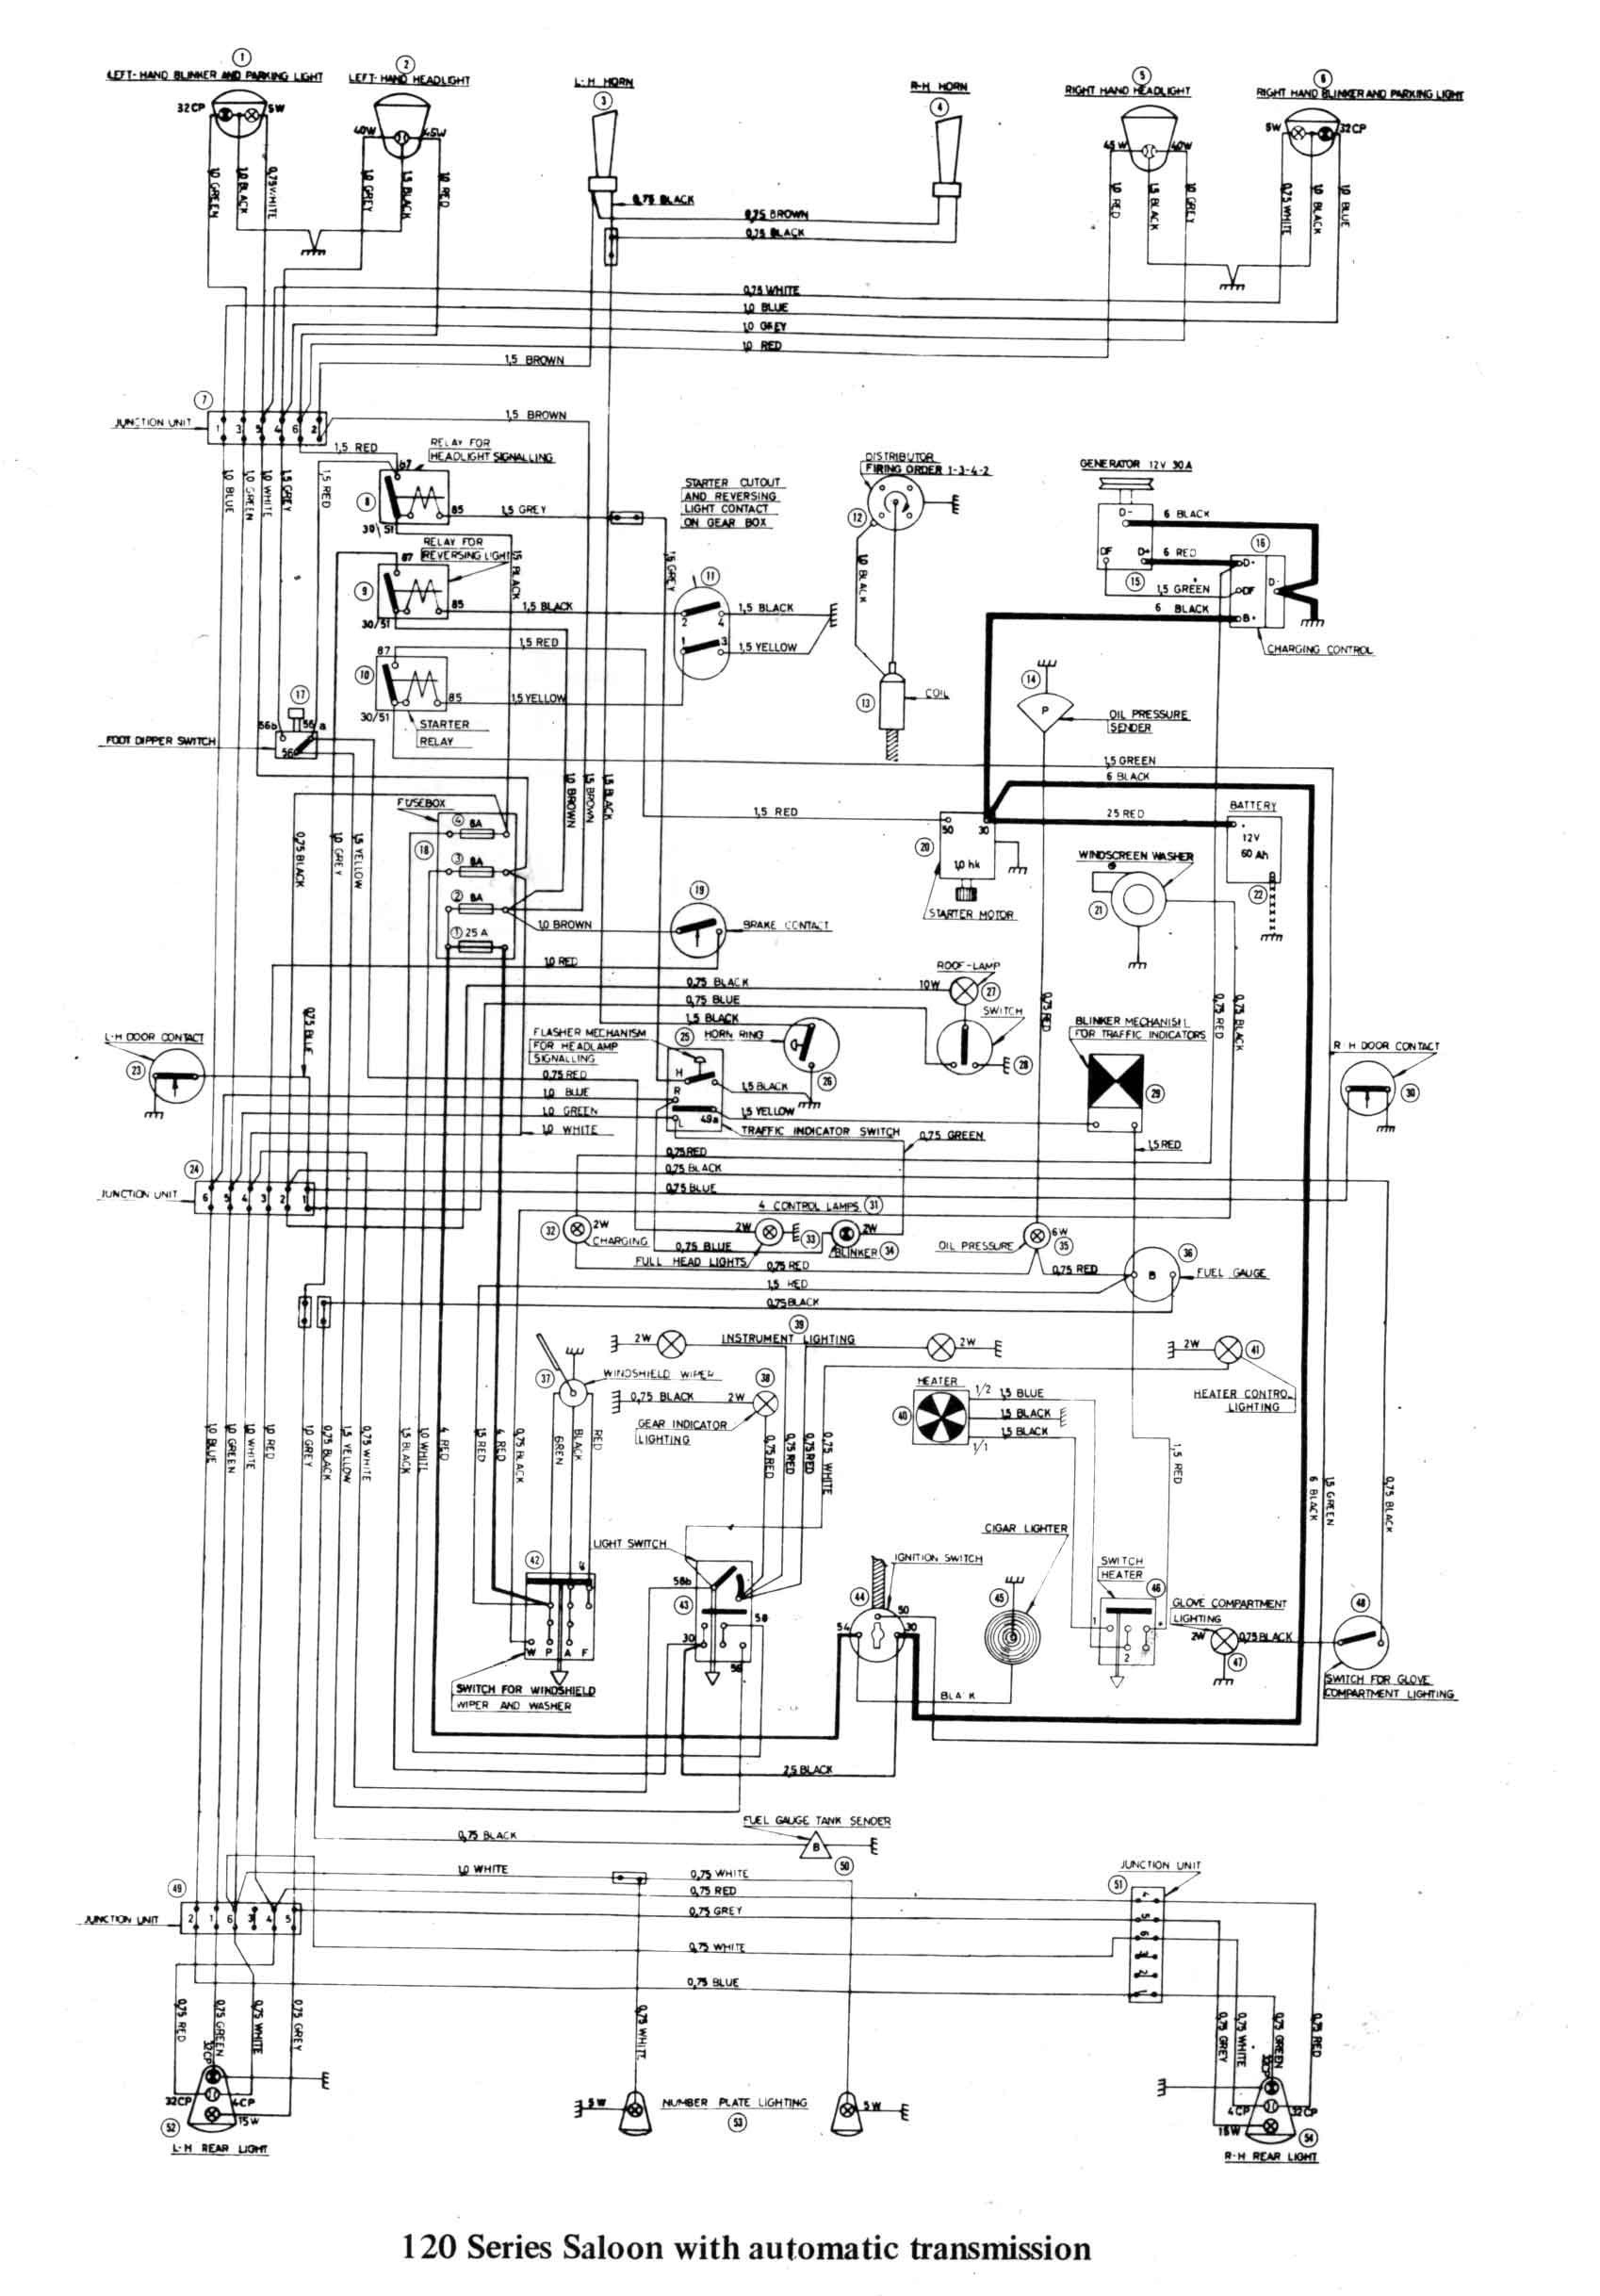 turn signal switch wiring diagram Collection-Wiring Diagrams For Turn Signal Refrence Hochzeitsbereich Faszinierend Vintage Hochzeitsblumen Blinker 16-g